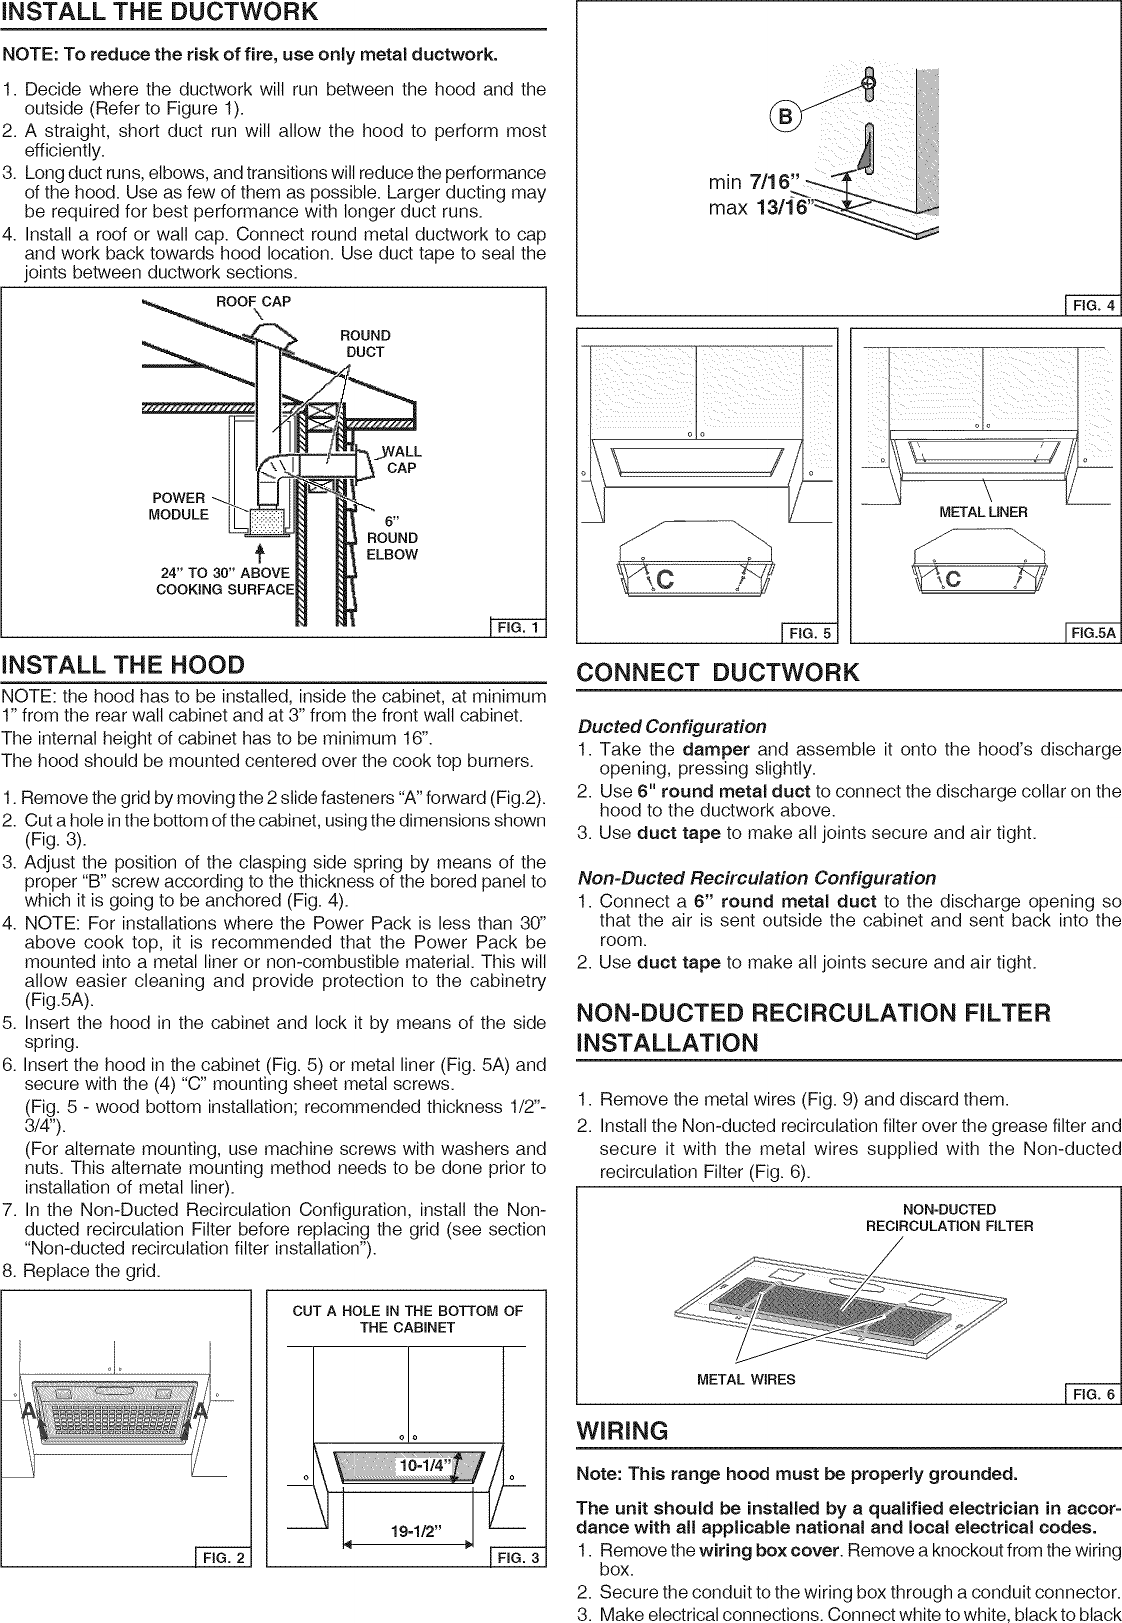 hight resolution of page 2 of 8 broan range hood manual l1002445